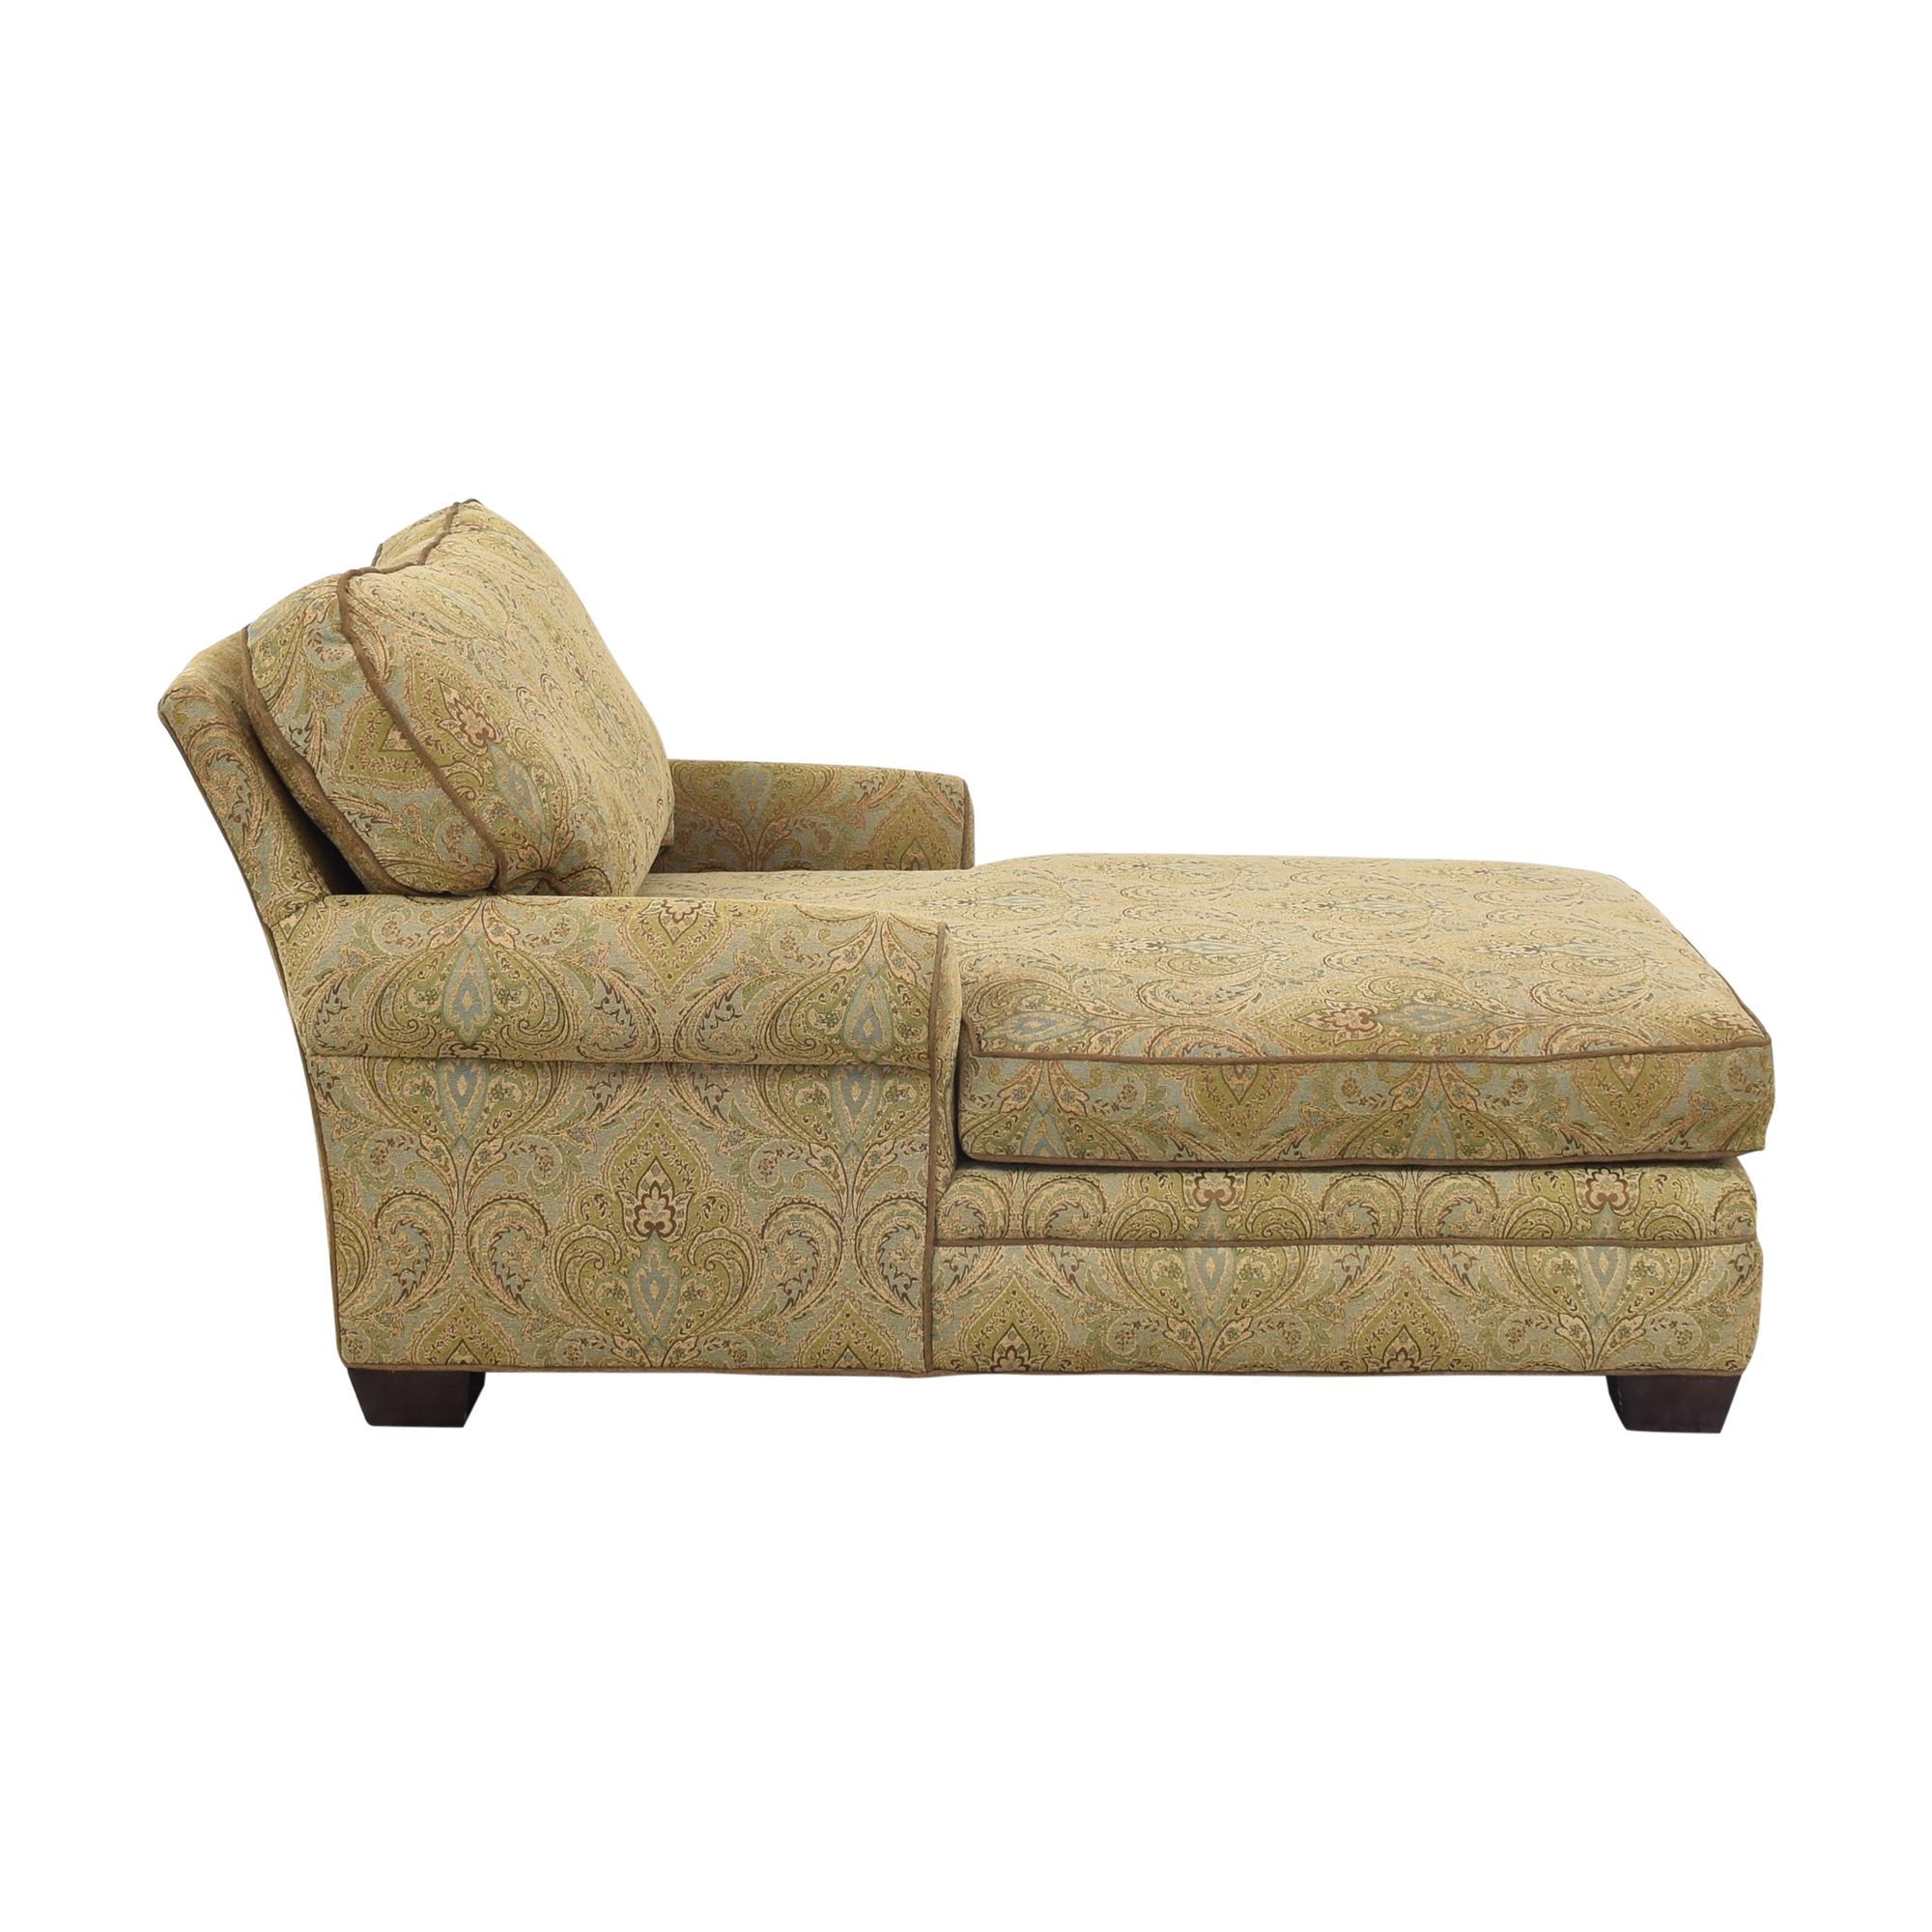 Lee Industries Lee Industries Chaise Lounge pa